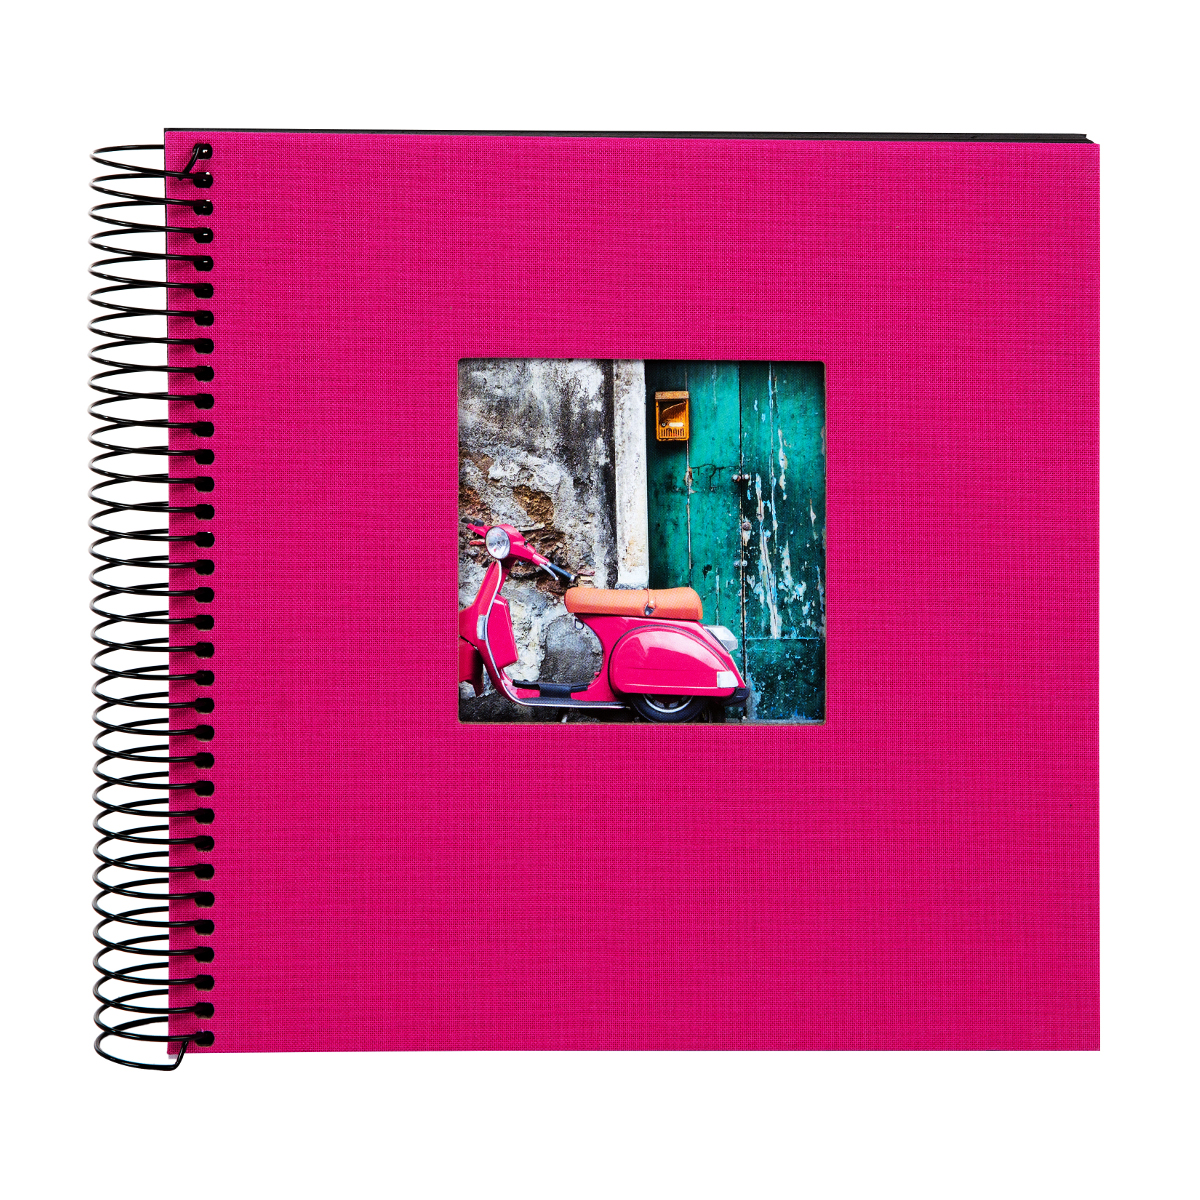 goldbuch Spiralalbum Bella Vista pink mini